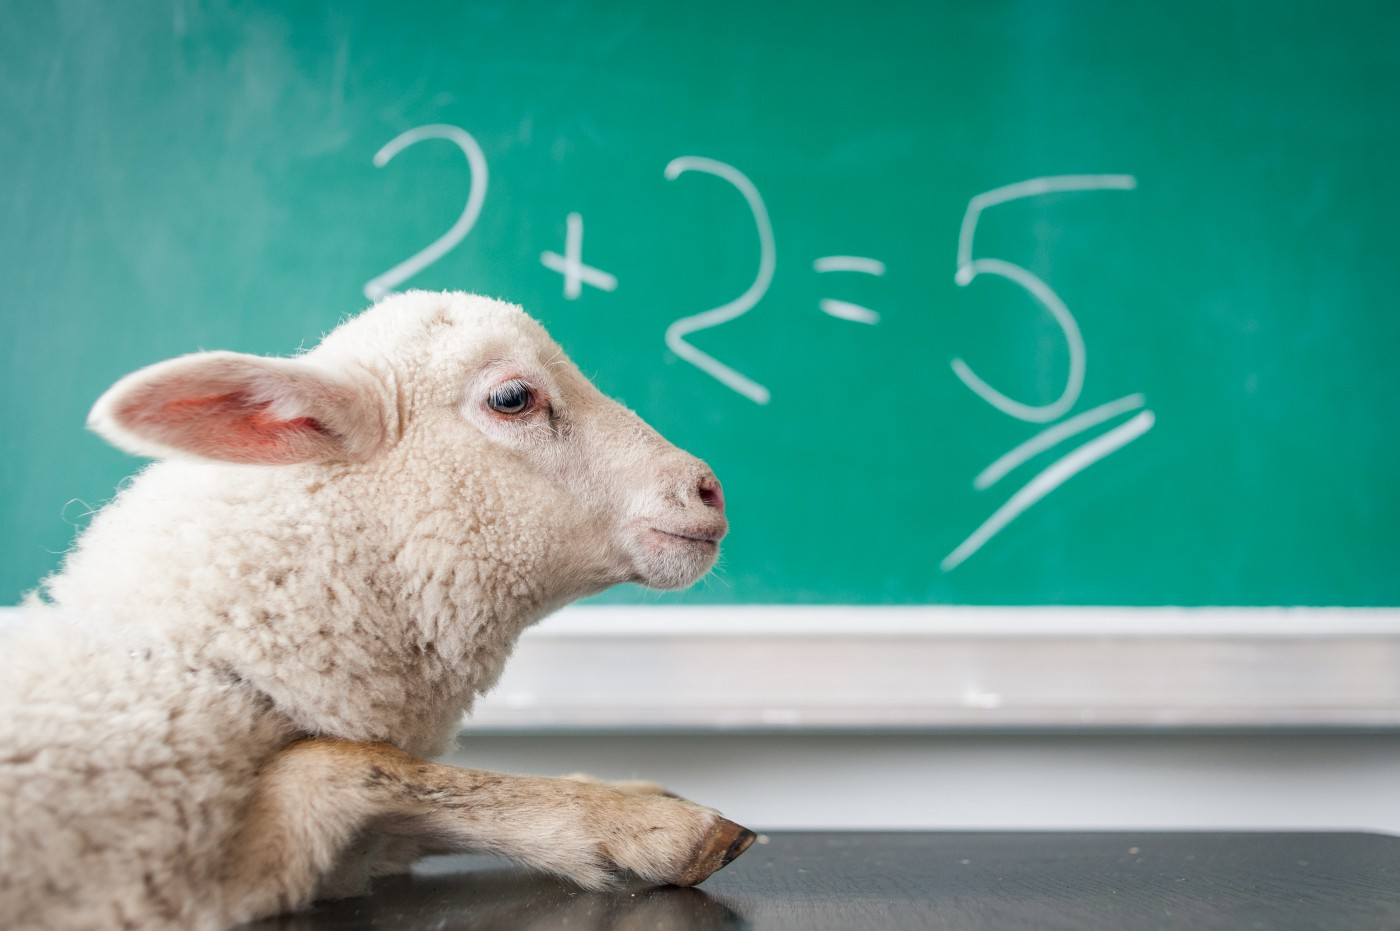 A goat in front of a chalkboard that says 2 + 2 = 5